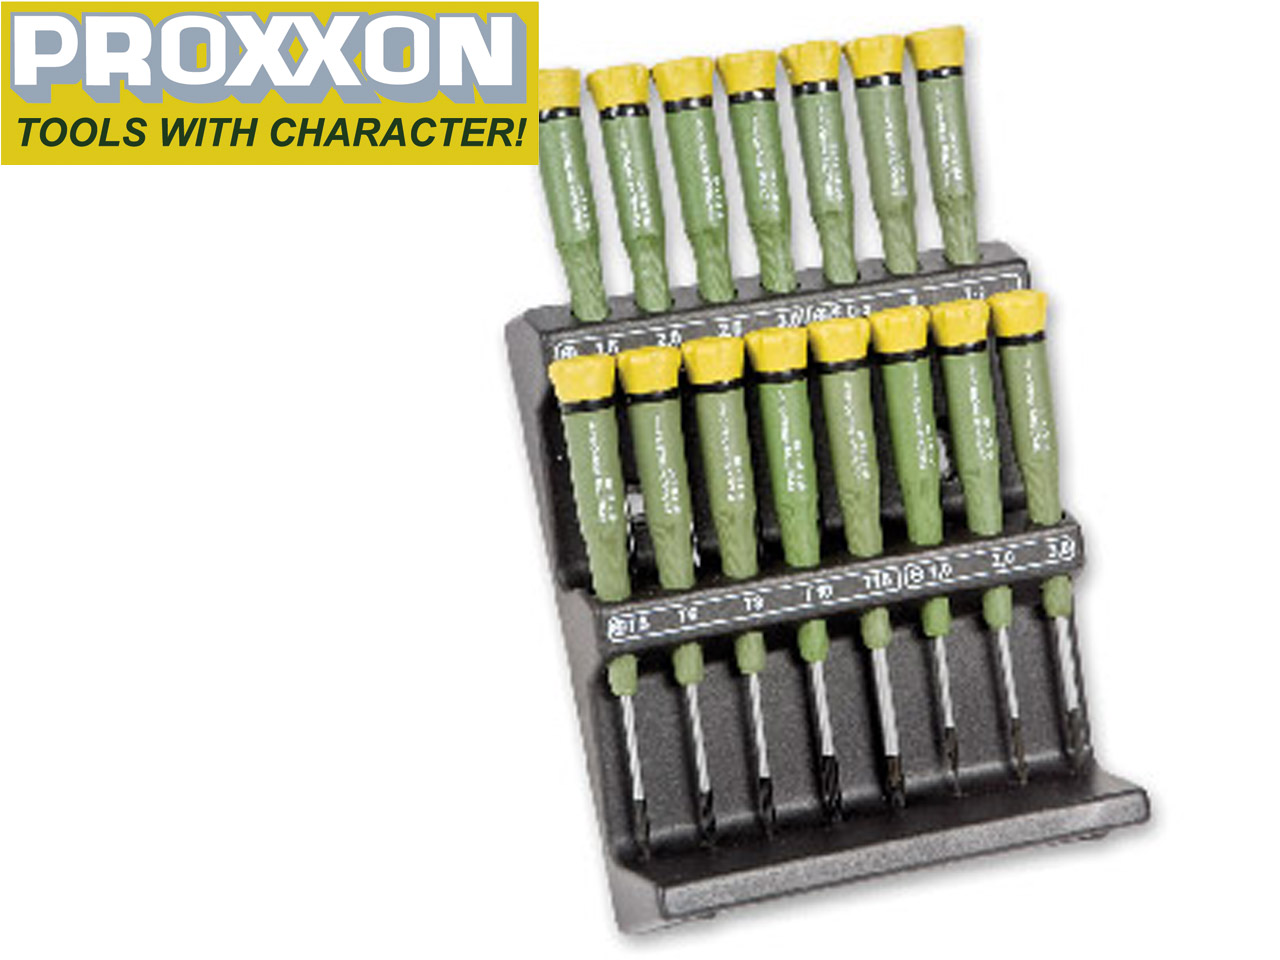 Proxxon Micro Screwdrivers